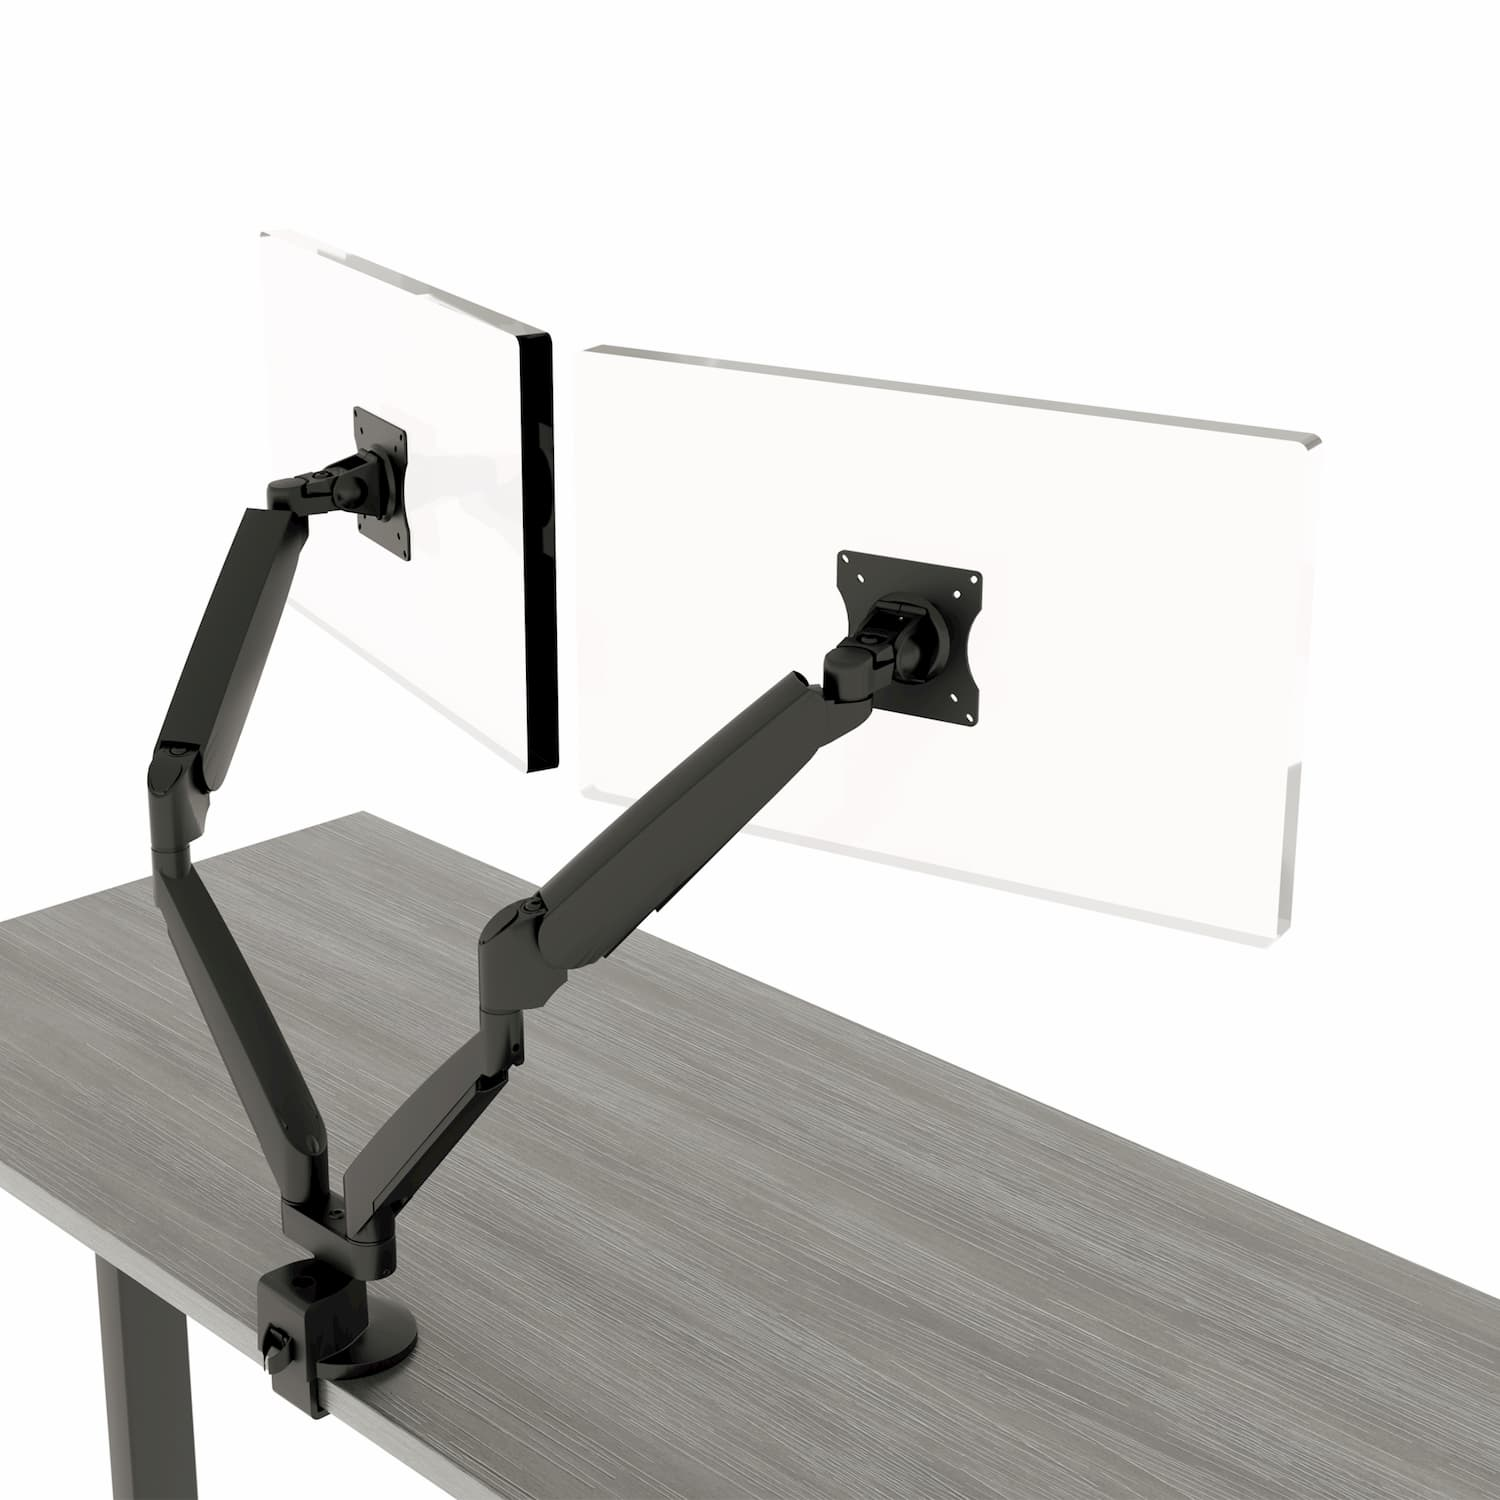 conform-dual-articulating-monitor-arm